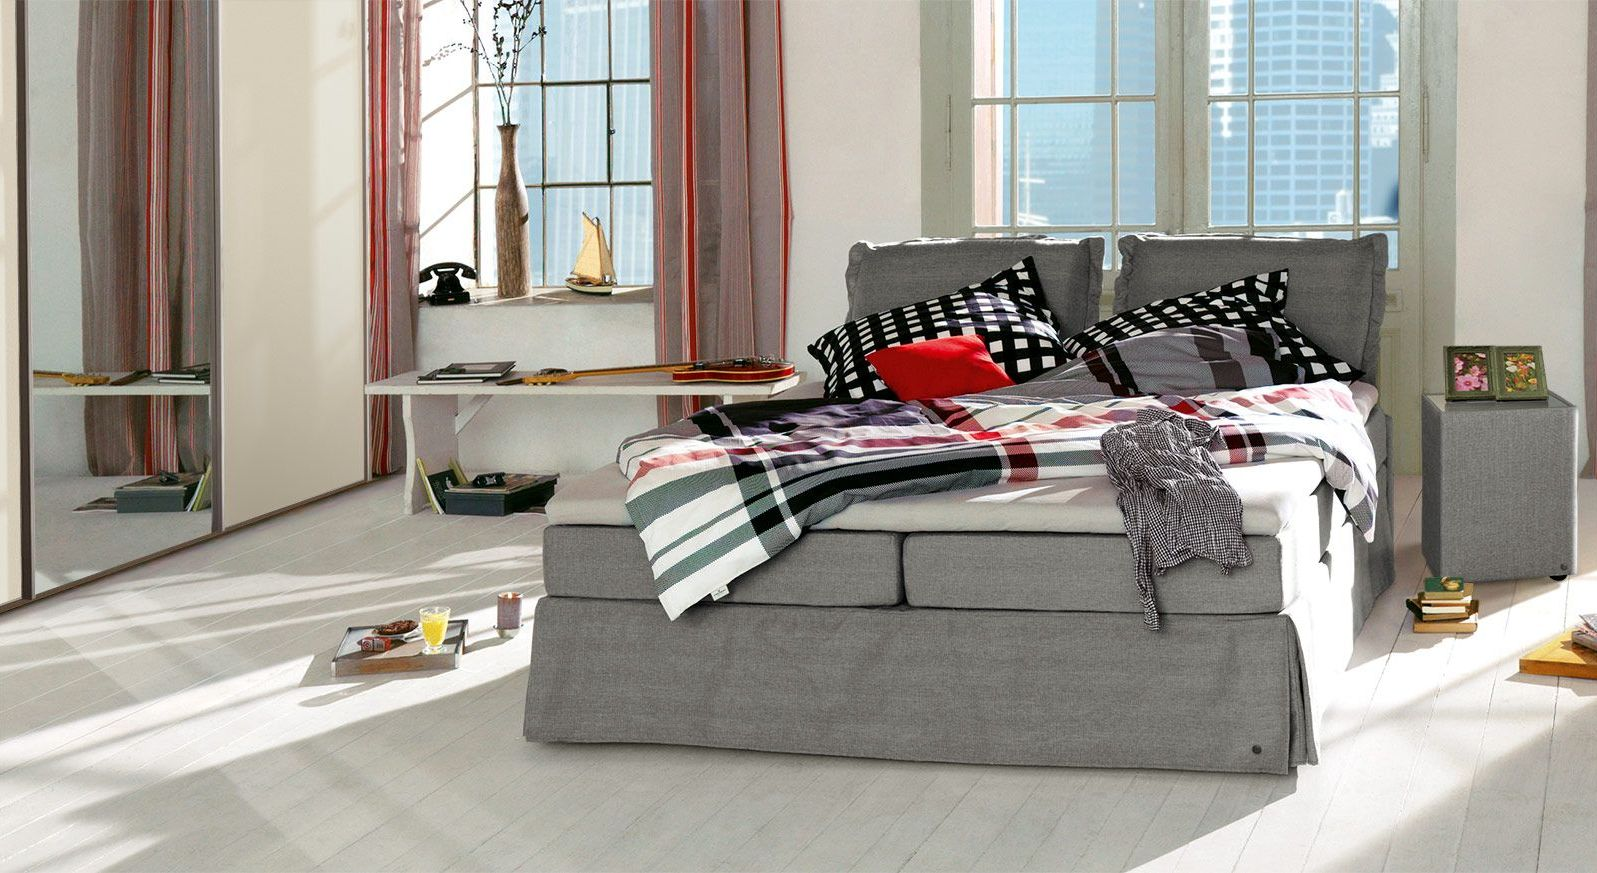 Boxspringbett Tom Tailor Cushion in grauem Webstoff